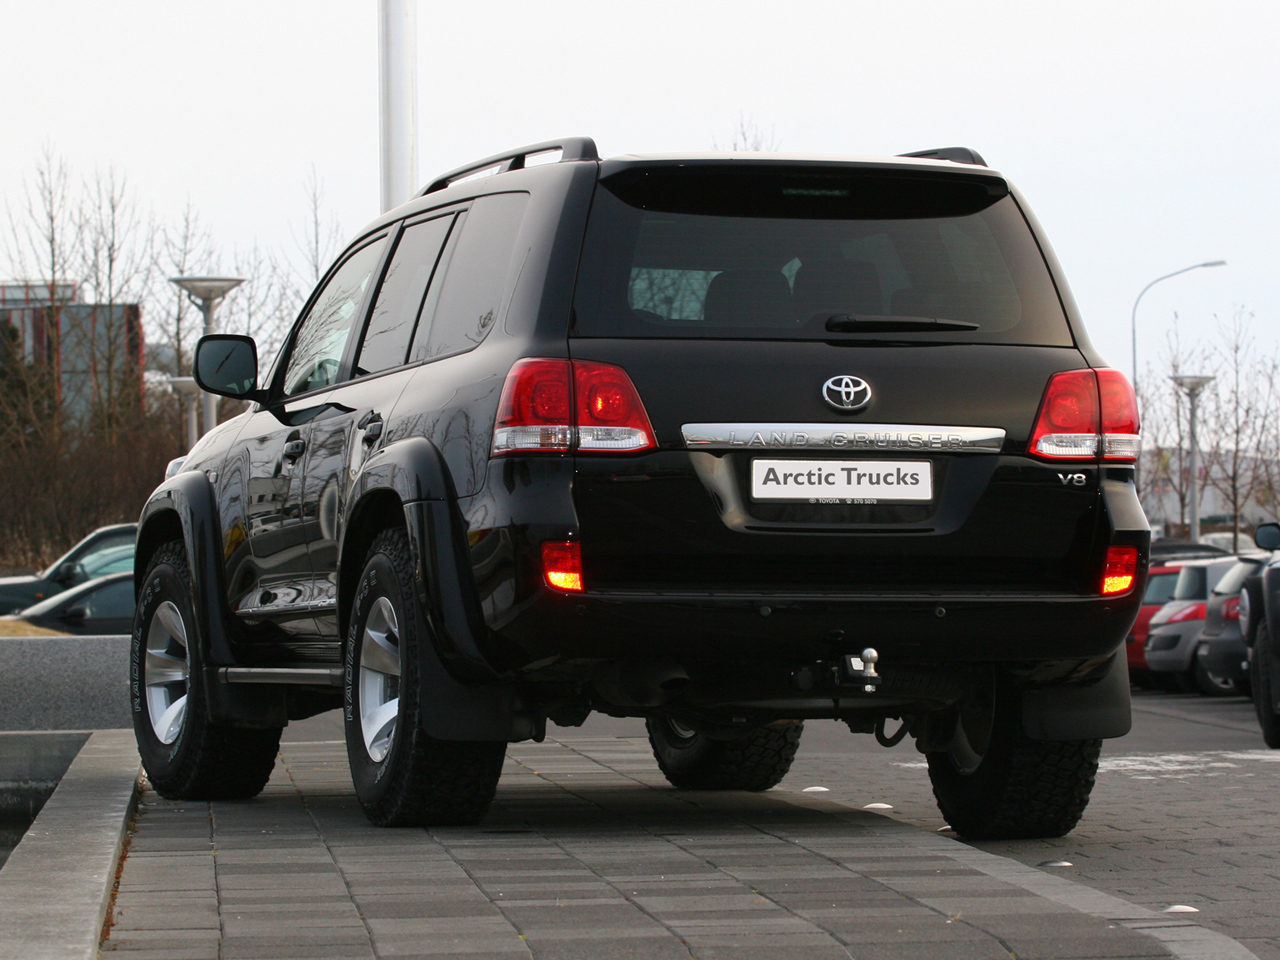 Arctic Trucks Toyota Land Cruiser 200 photo 61472